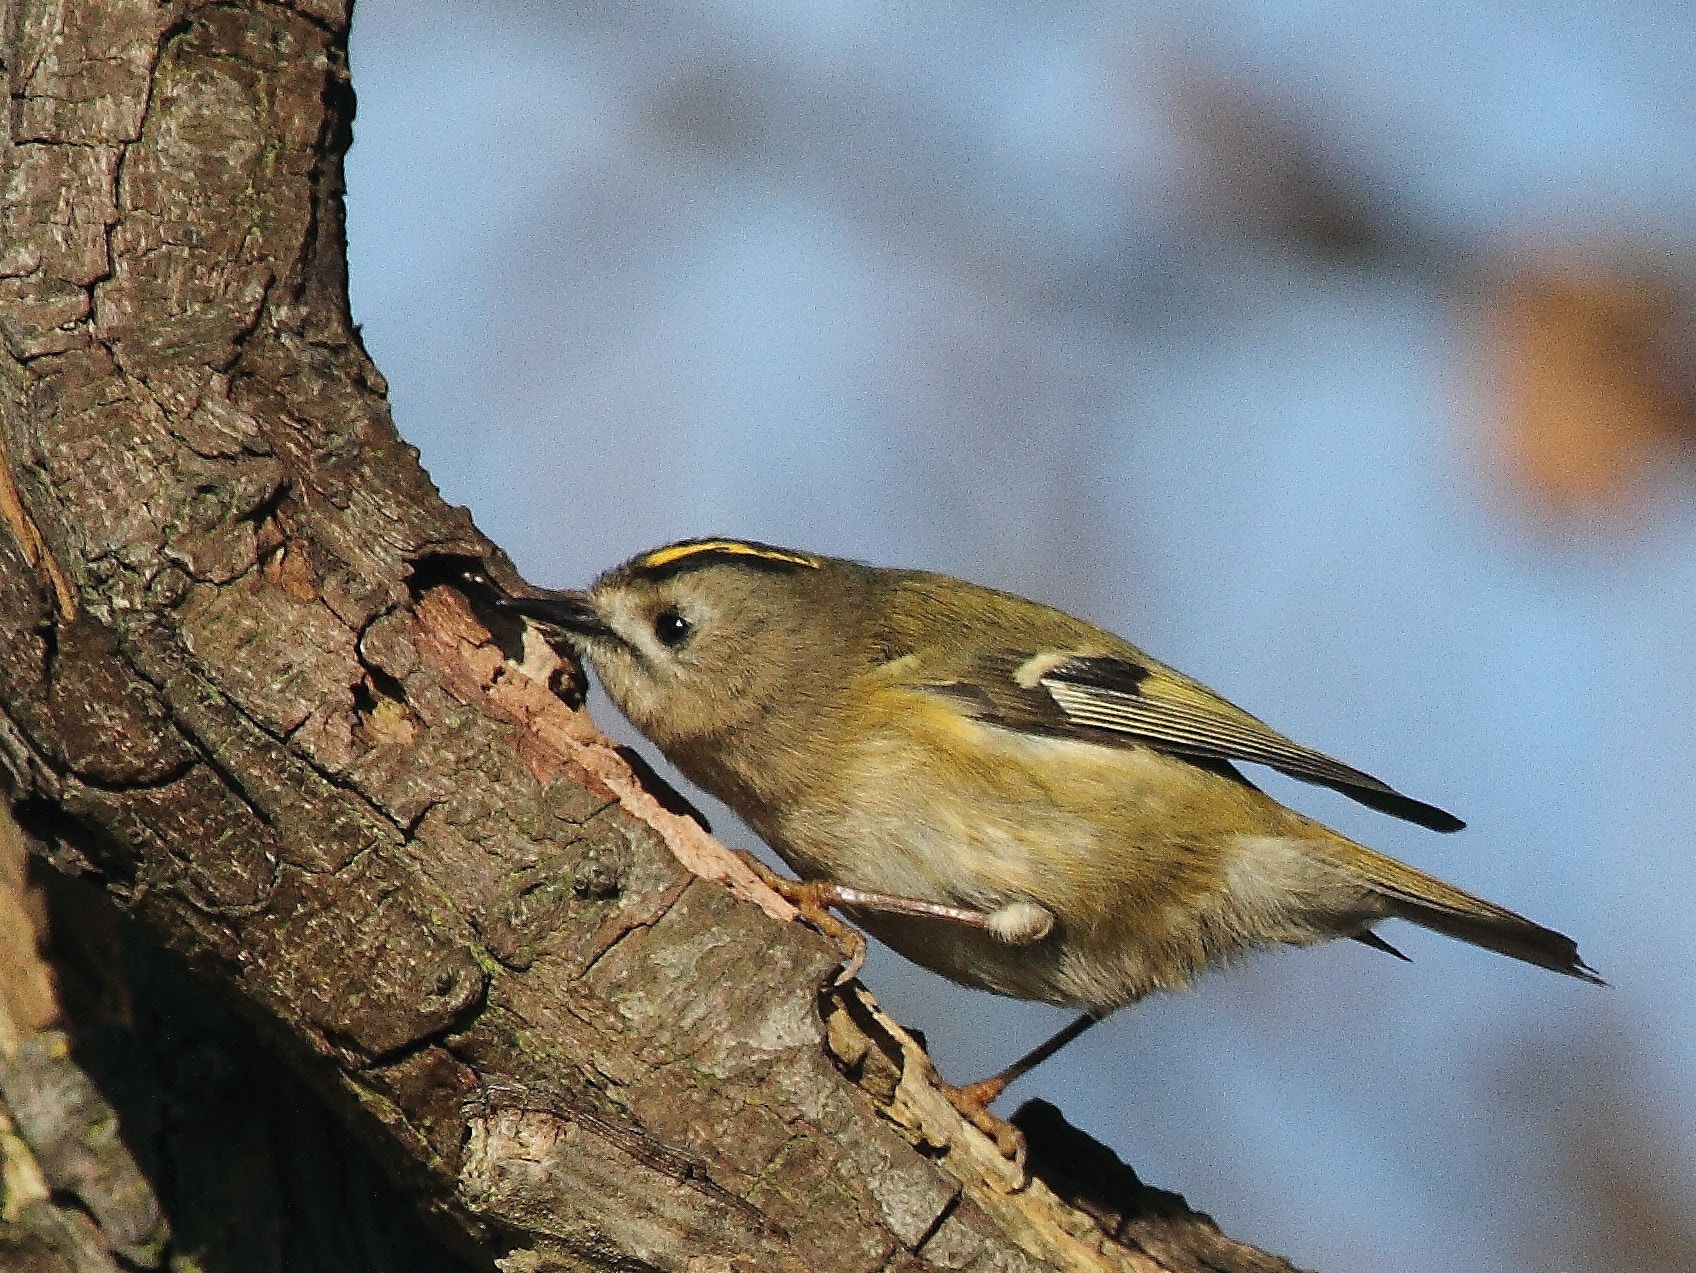 Photograph Goldcrest bird by Steve Adams on 500px